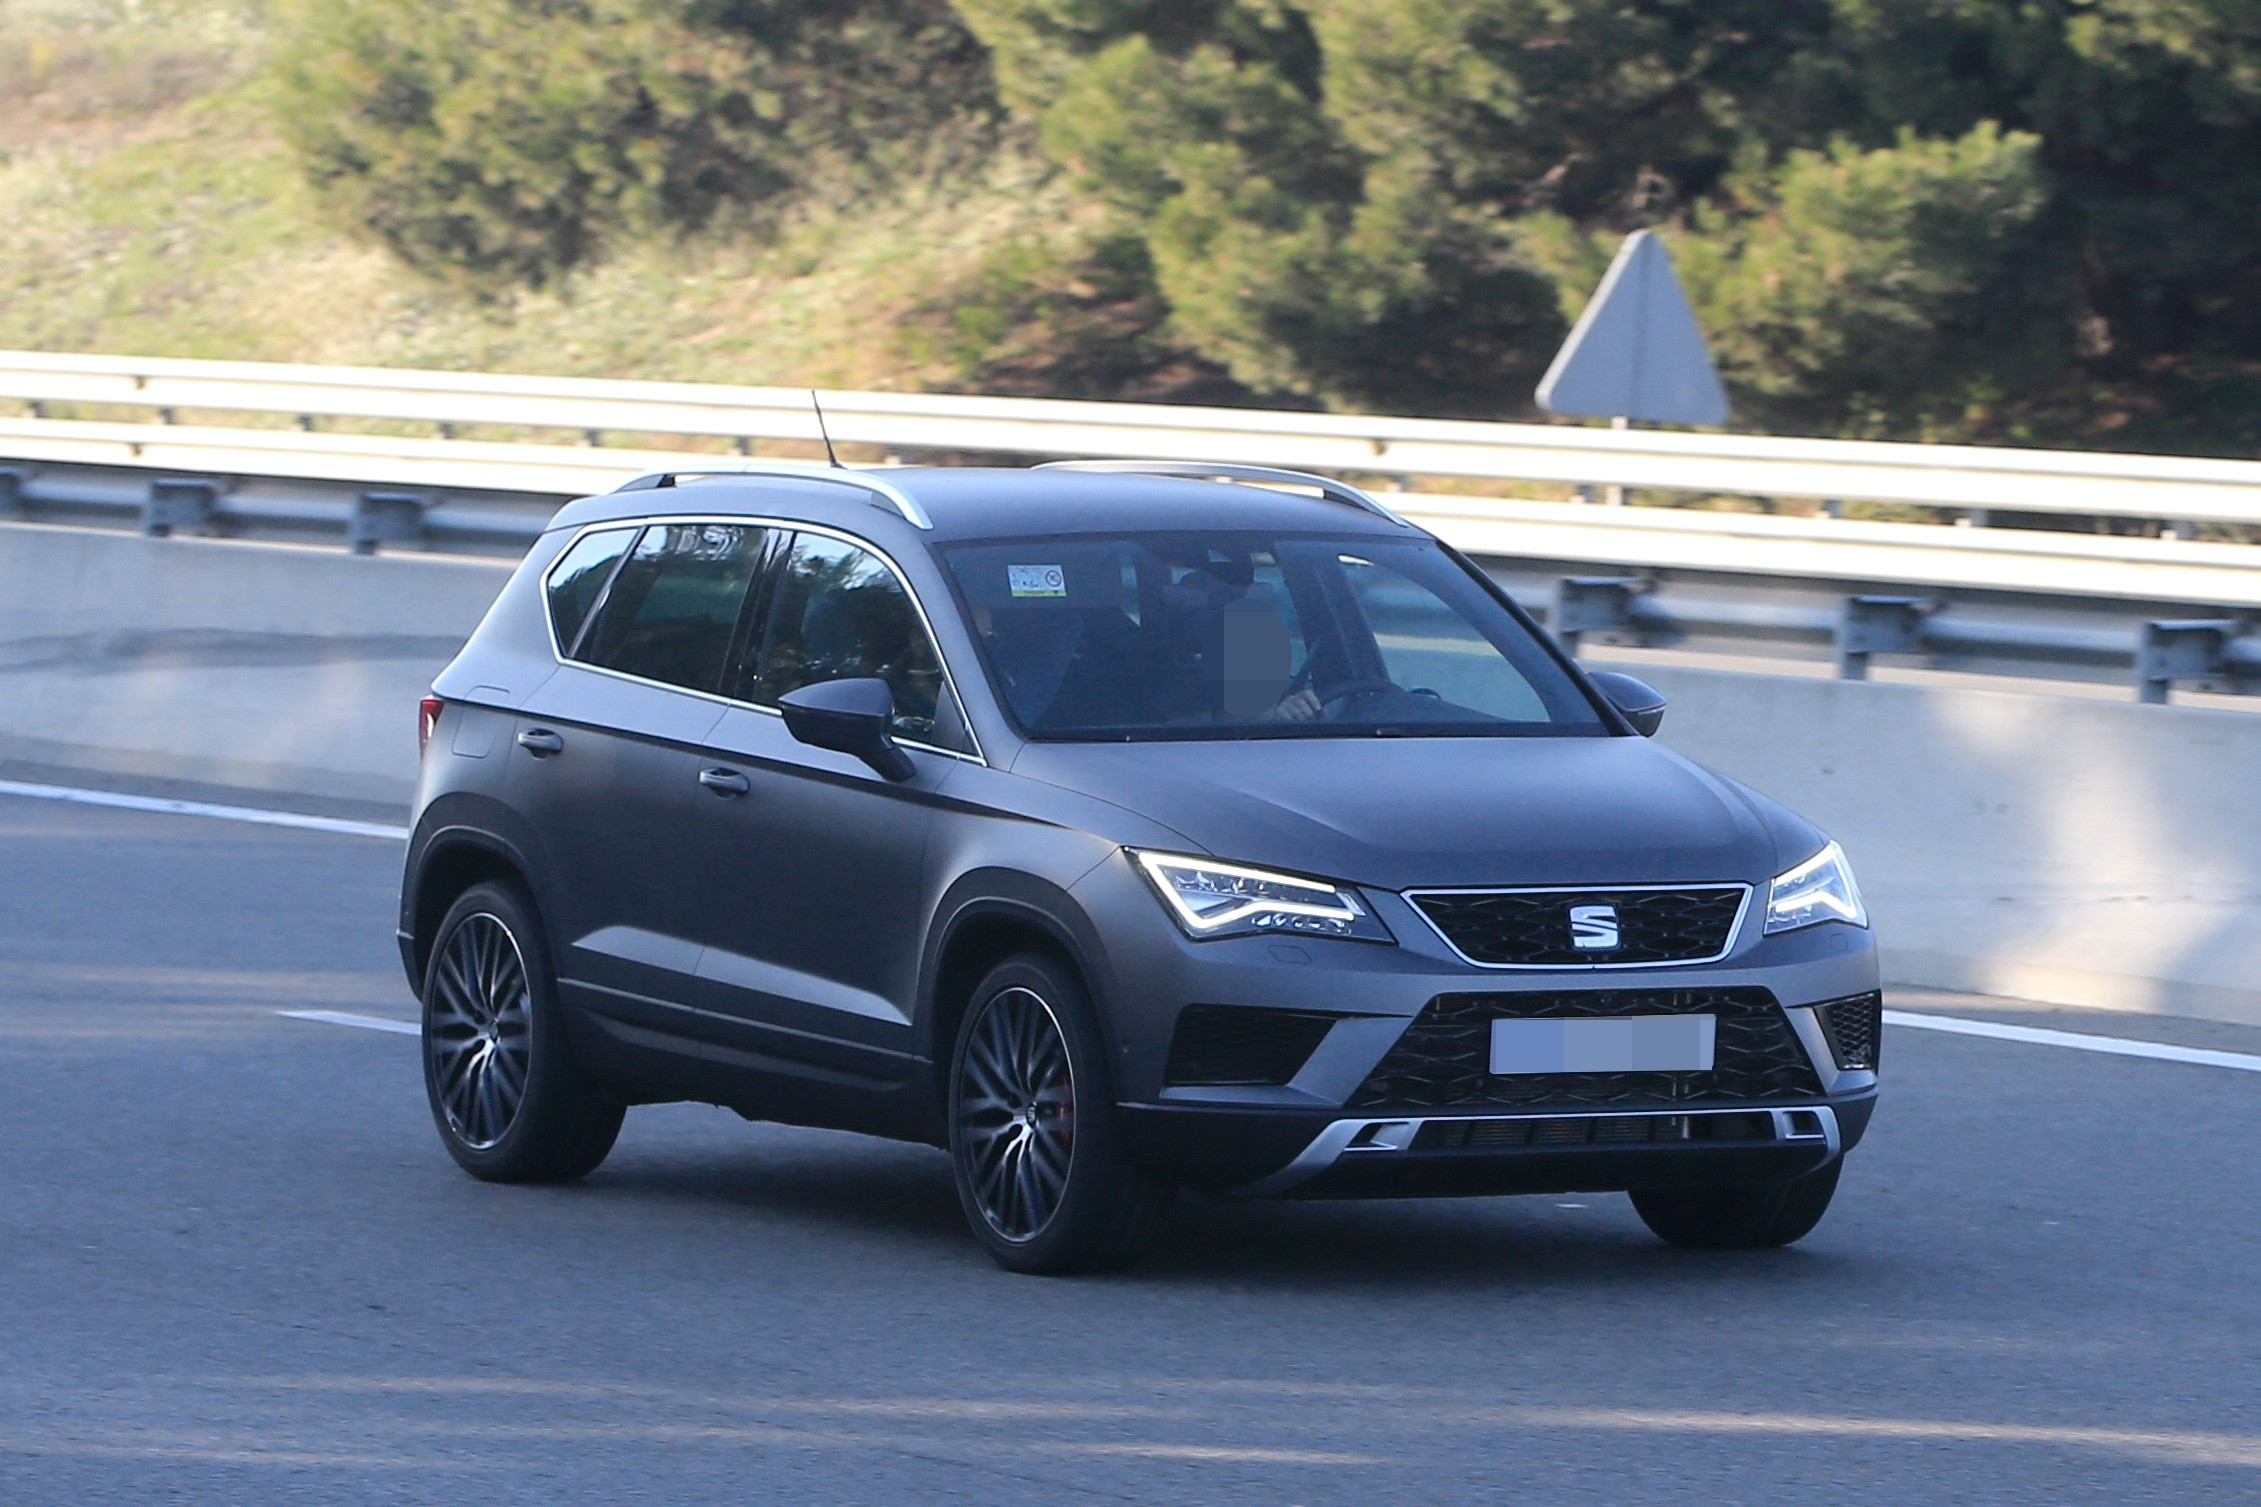 SEAT Ateca Cupra Spied in Full View While Testing in Spain - autoevolution